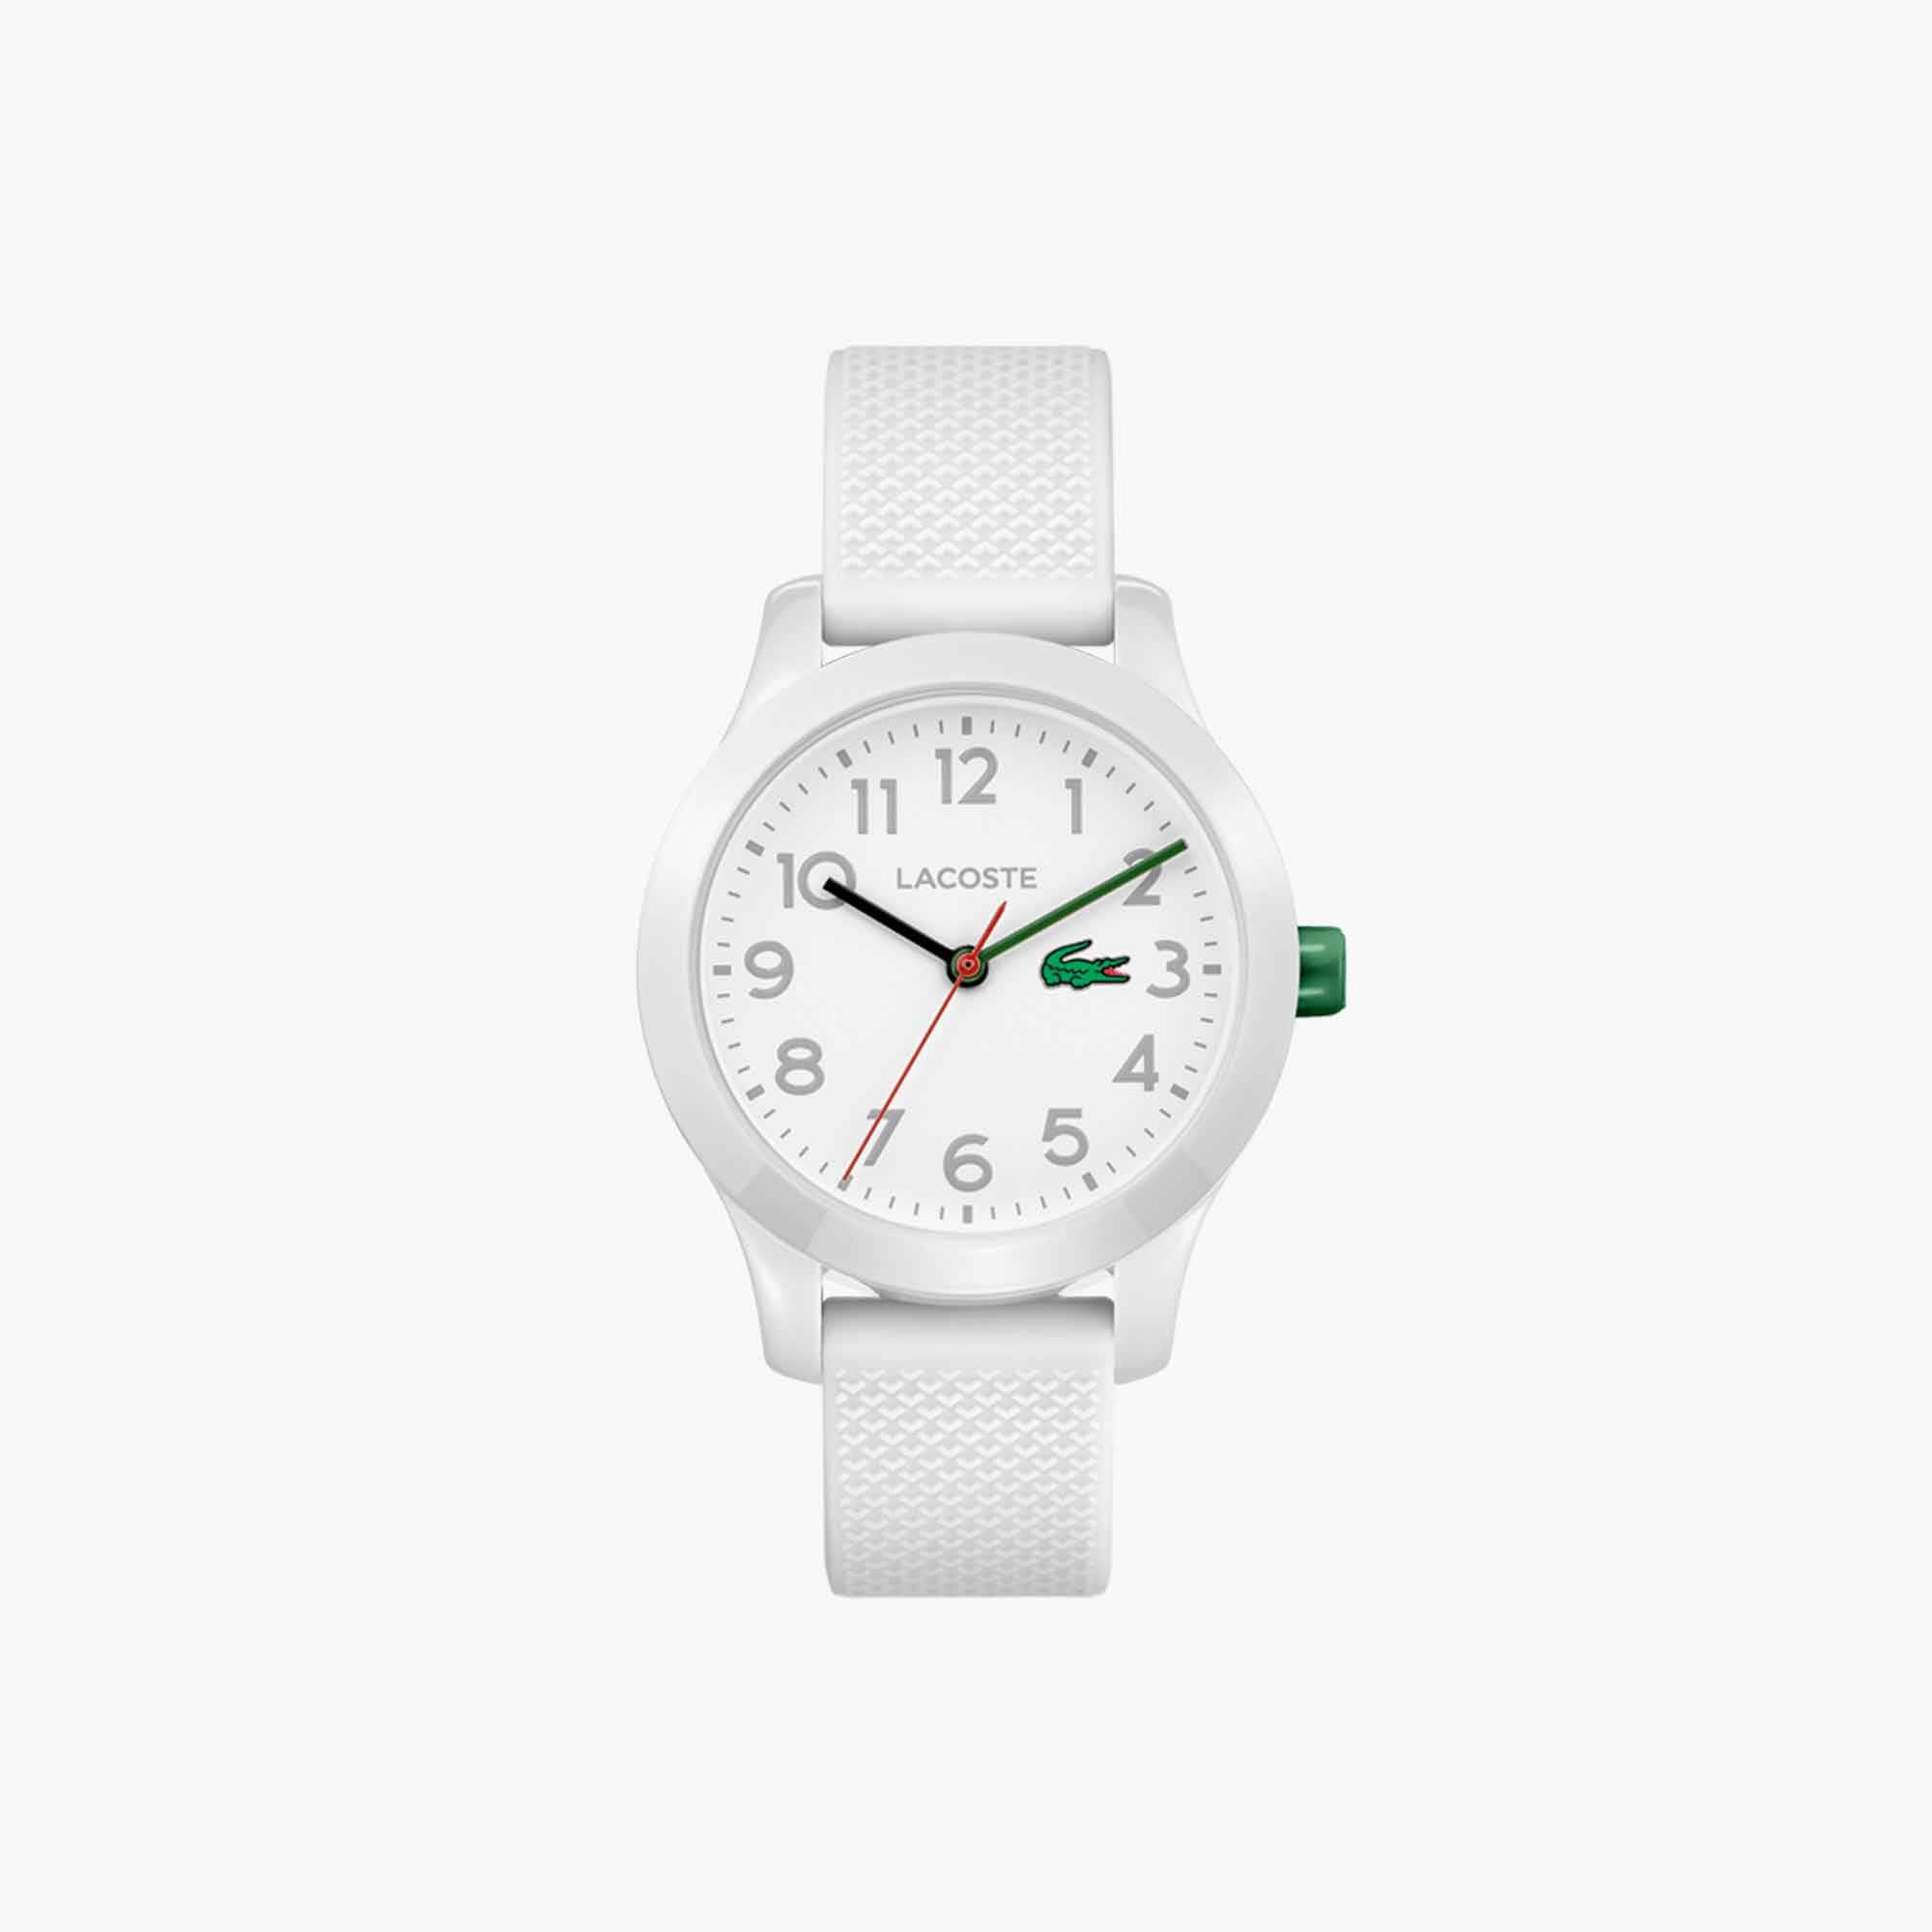 Child's Lacoste 12.12 Watch with White Silicone Strap